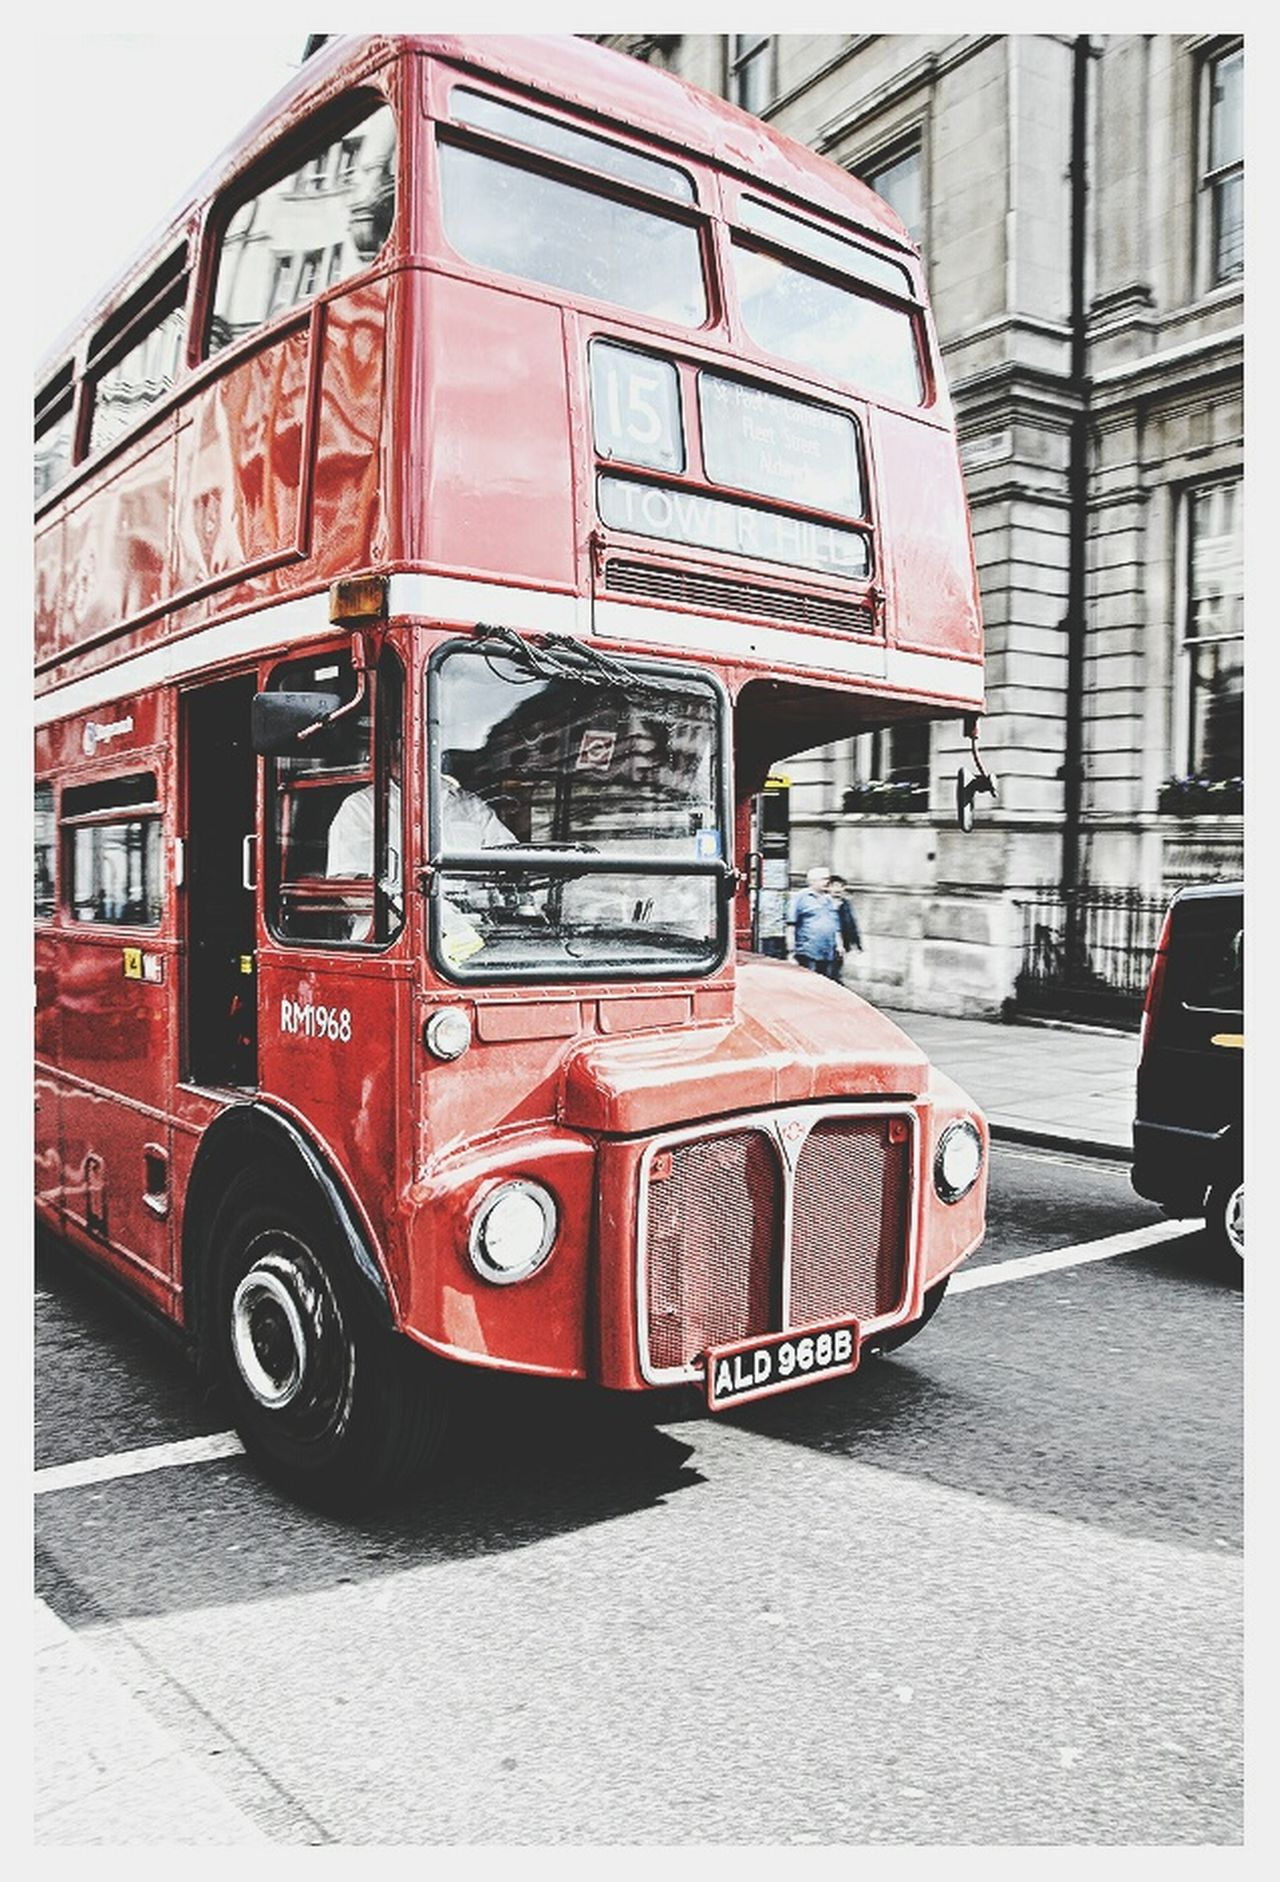 London Lifestyle bus Londonbus Bus London London Streets Londoncity London Bus Stefanopagliucaphotography London London London!!!